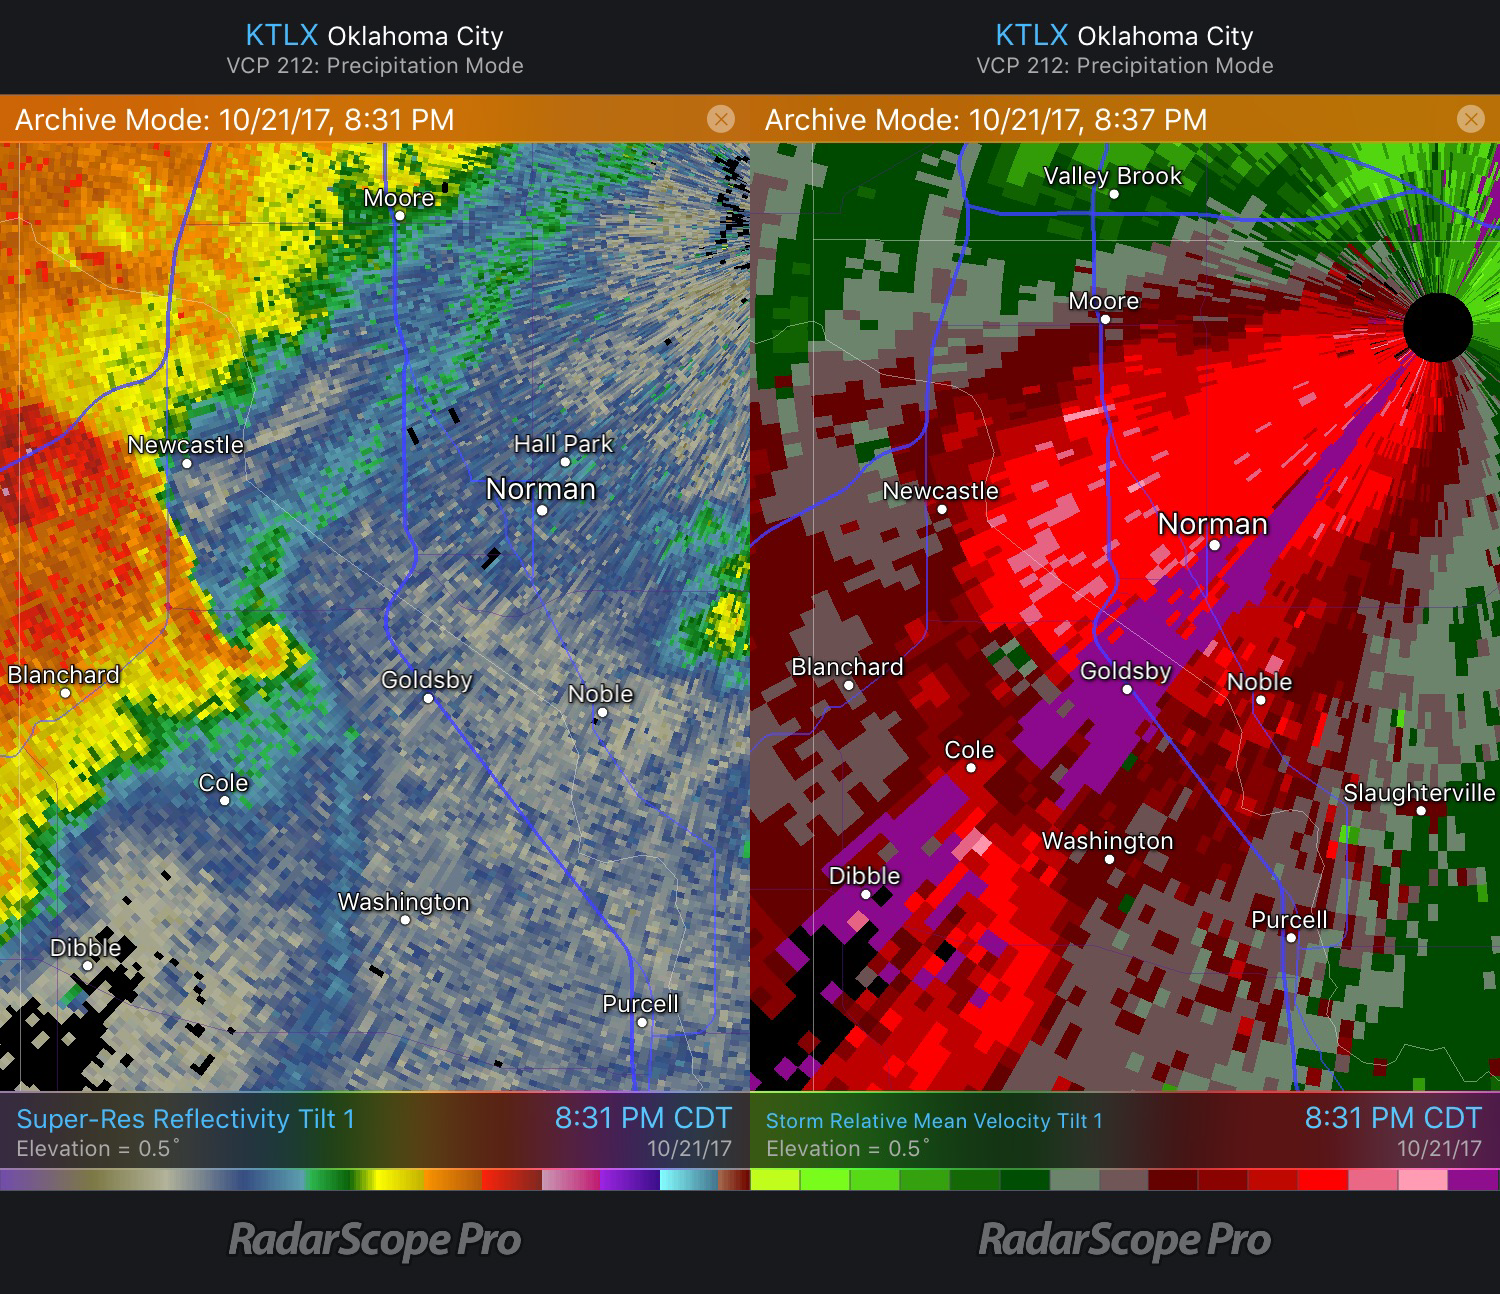 Goldsby Tornado Reflectivity and Velocity images from KTLX